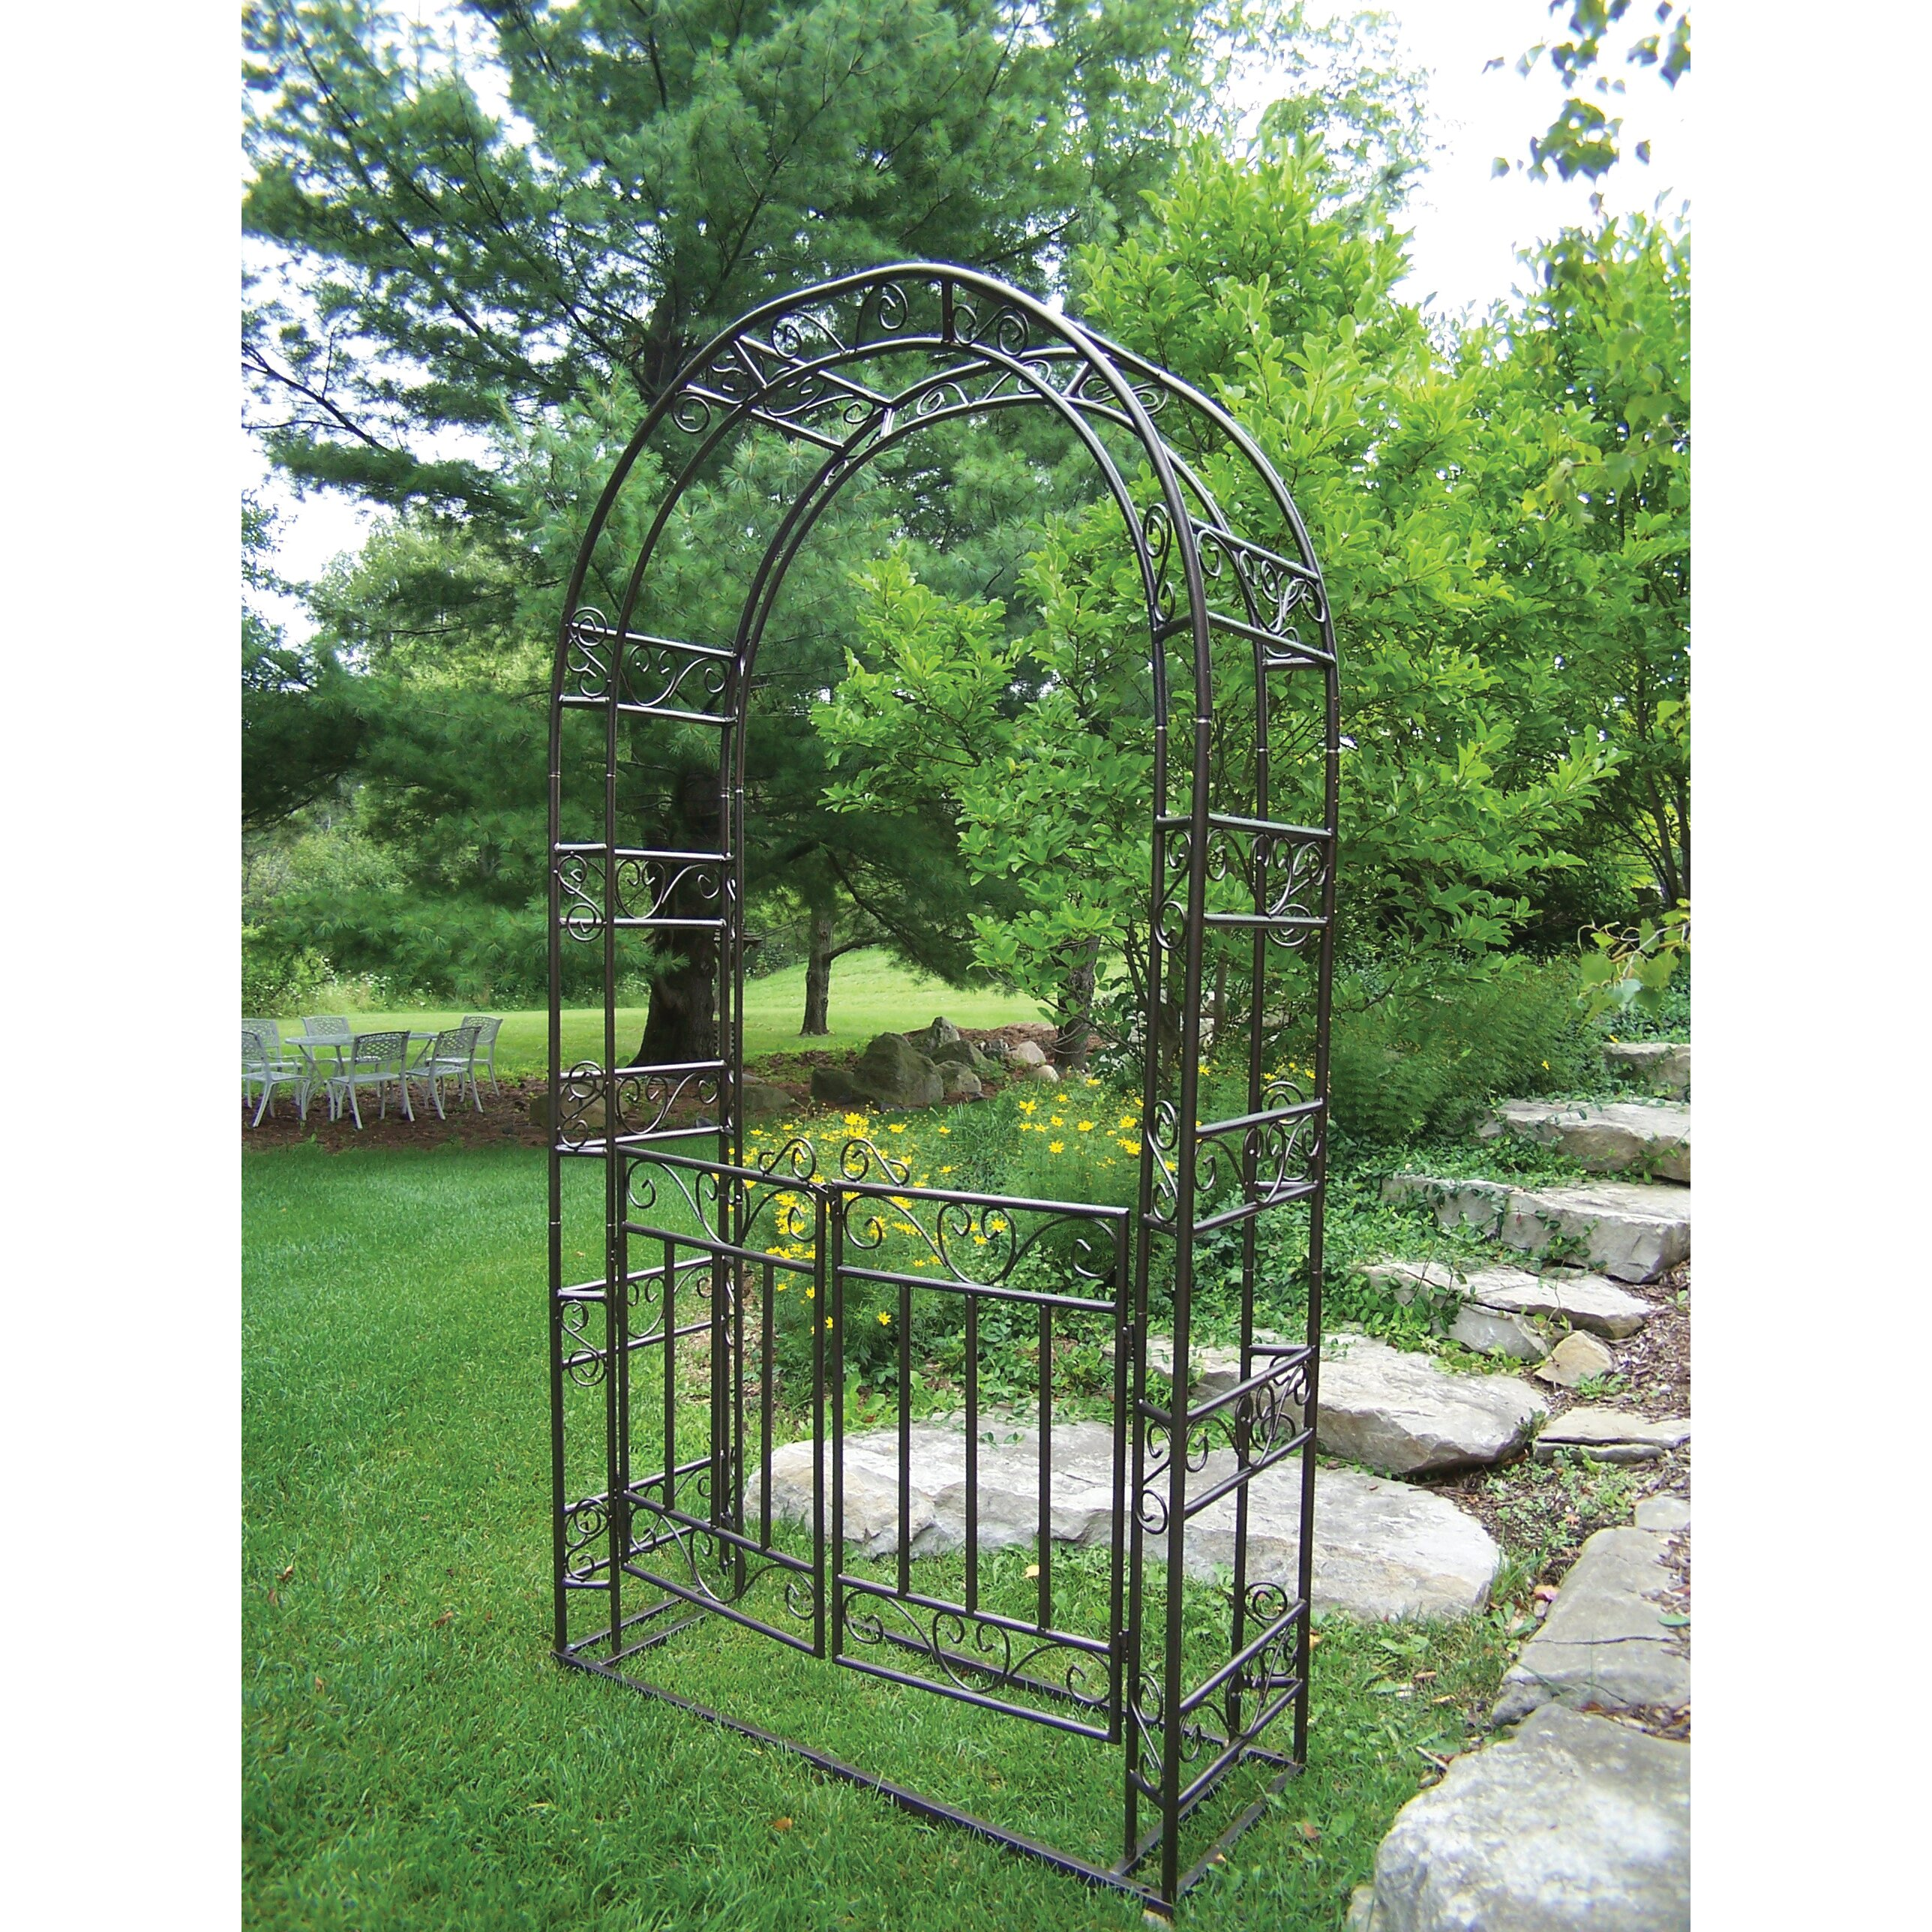 Arbor Living: Oakland Living Arbor With Gate And Base & Reviews